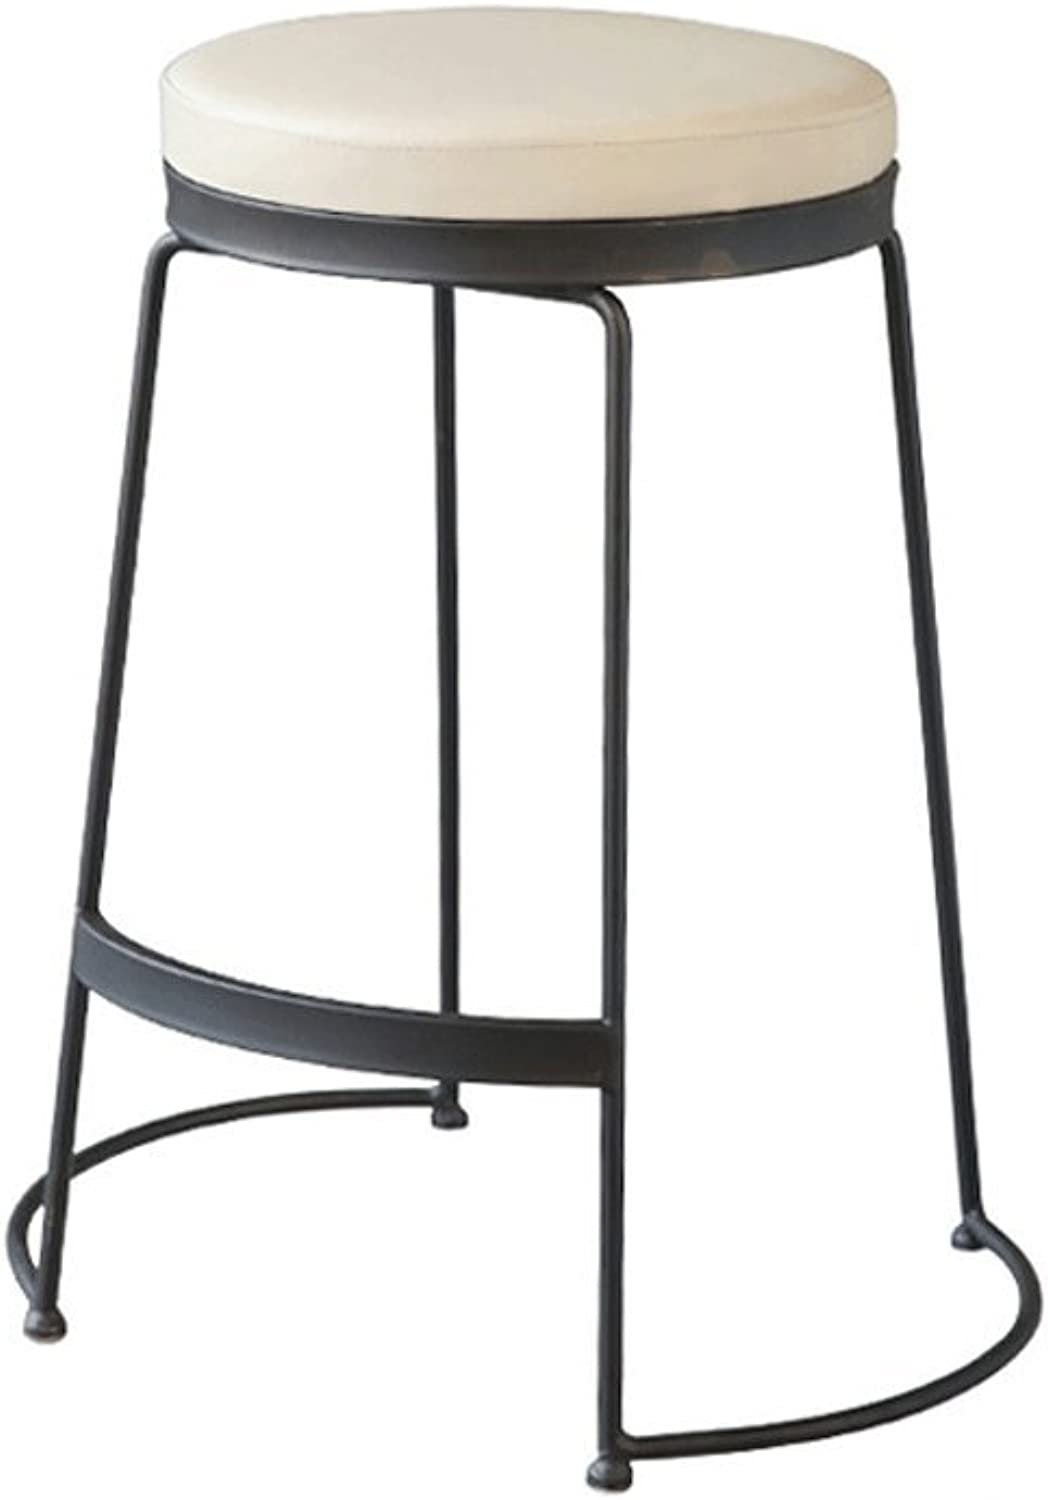 TXXM Barstools Metal Fashion Makeup Stool Dressing Stool shoes Bench Dining Chair (color   Black, Size   H45CM)